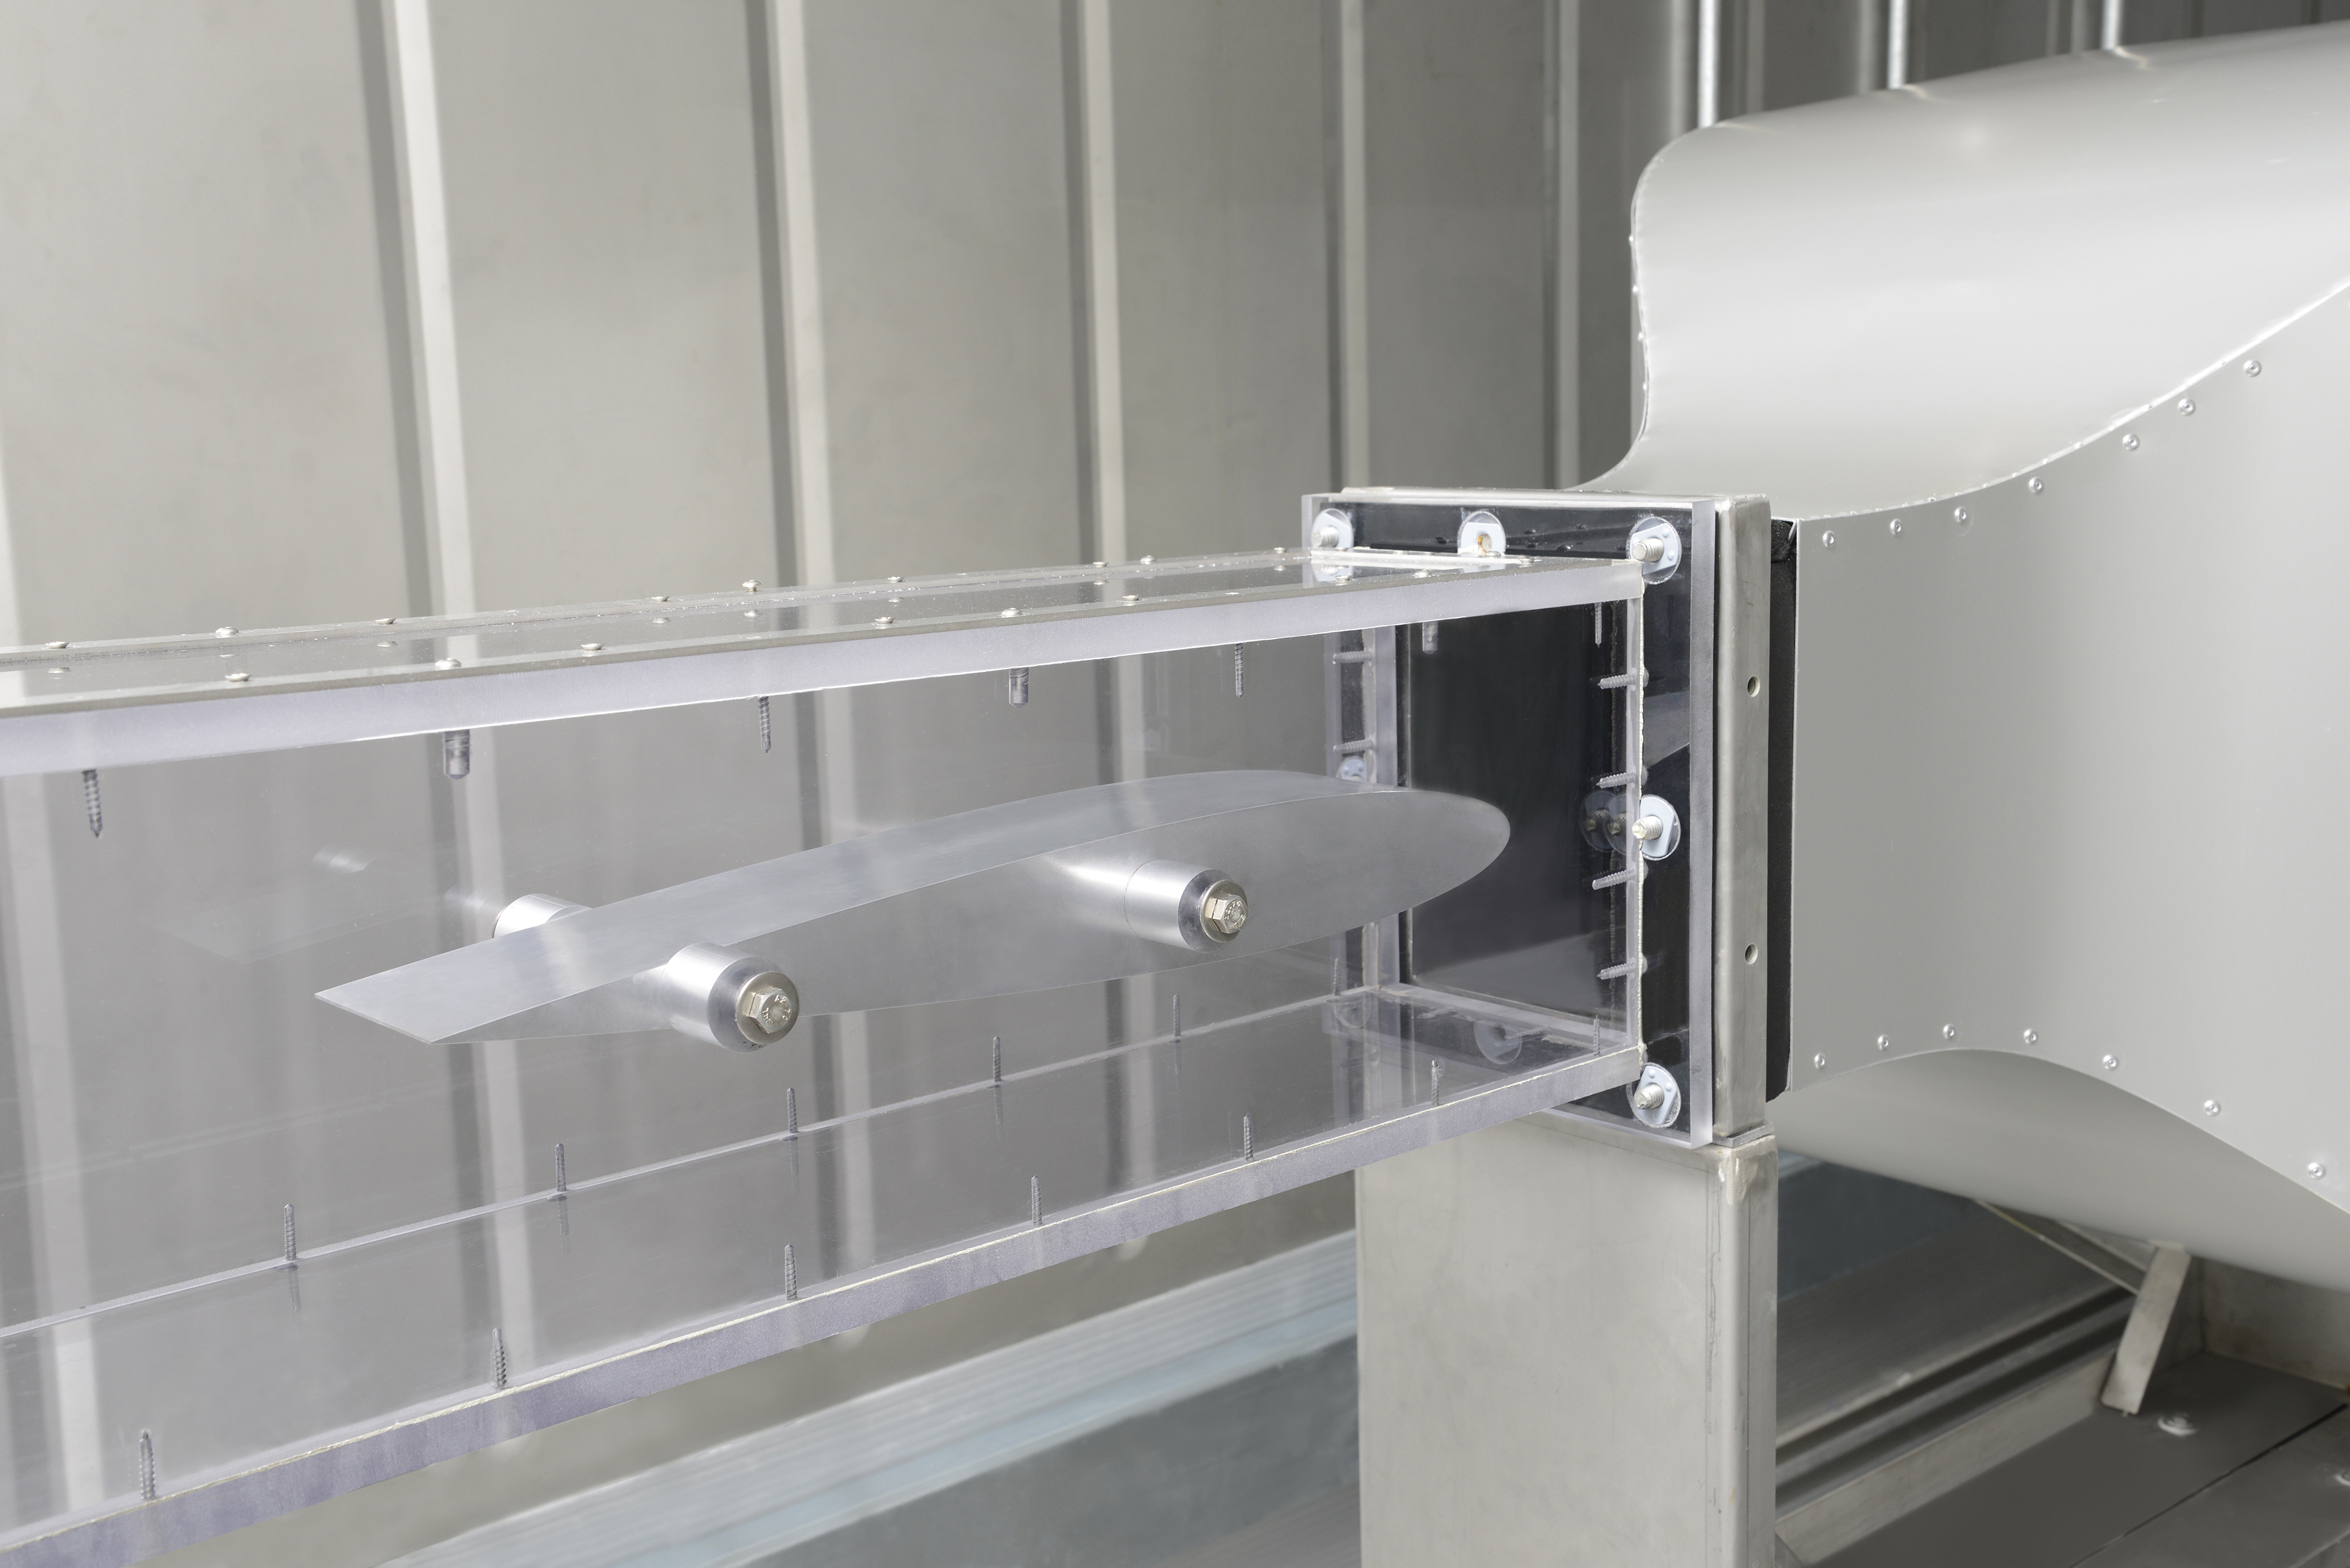 New Icing Wind Tunnel At Fraunhofer Ifam Allows Anti Icing